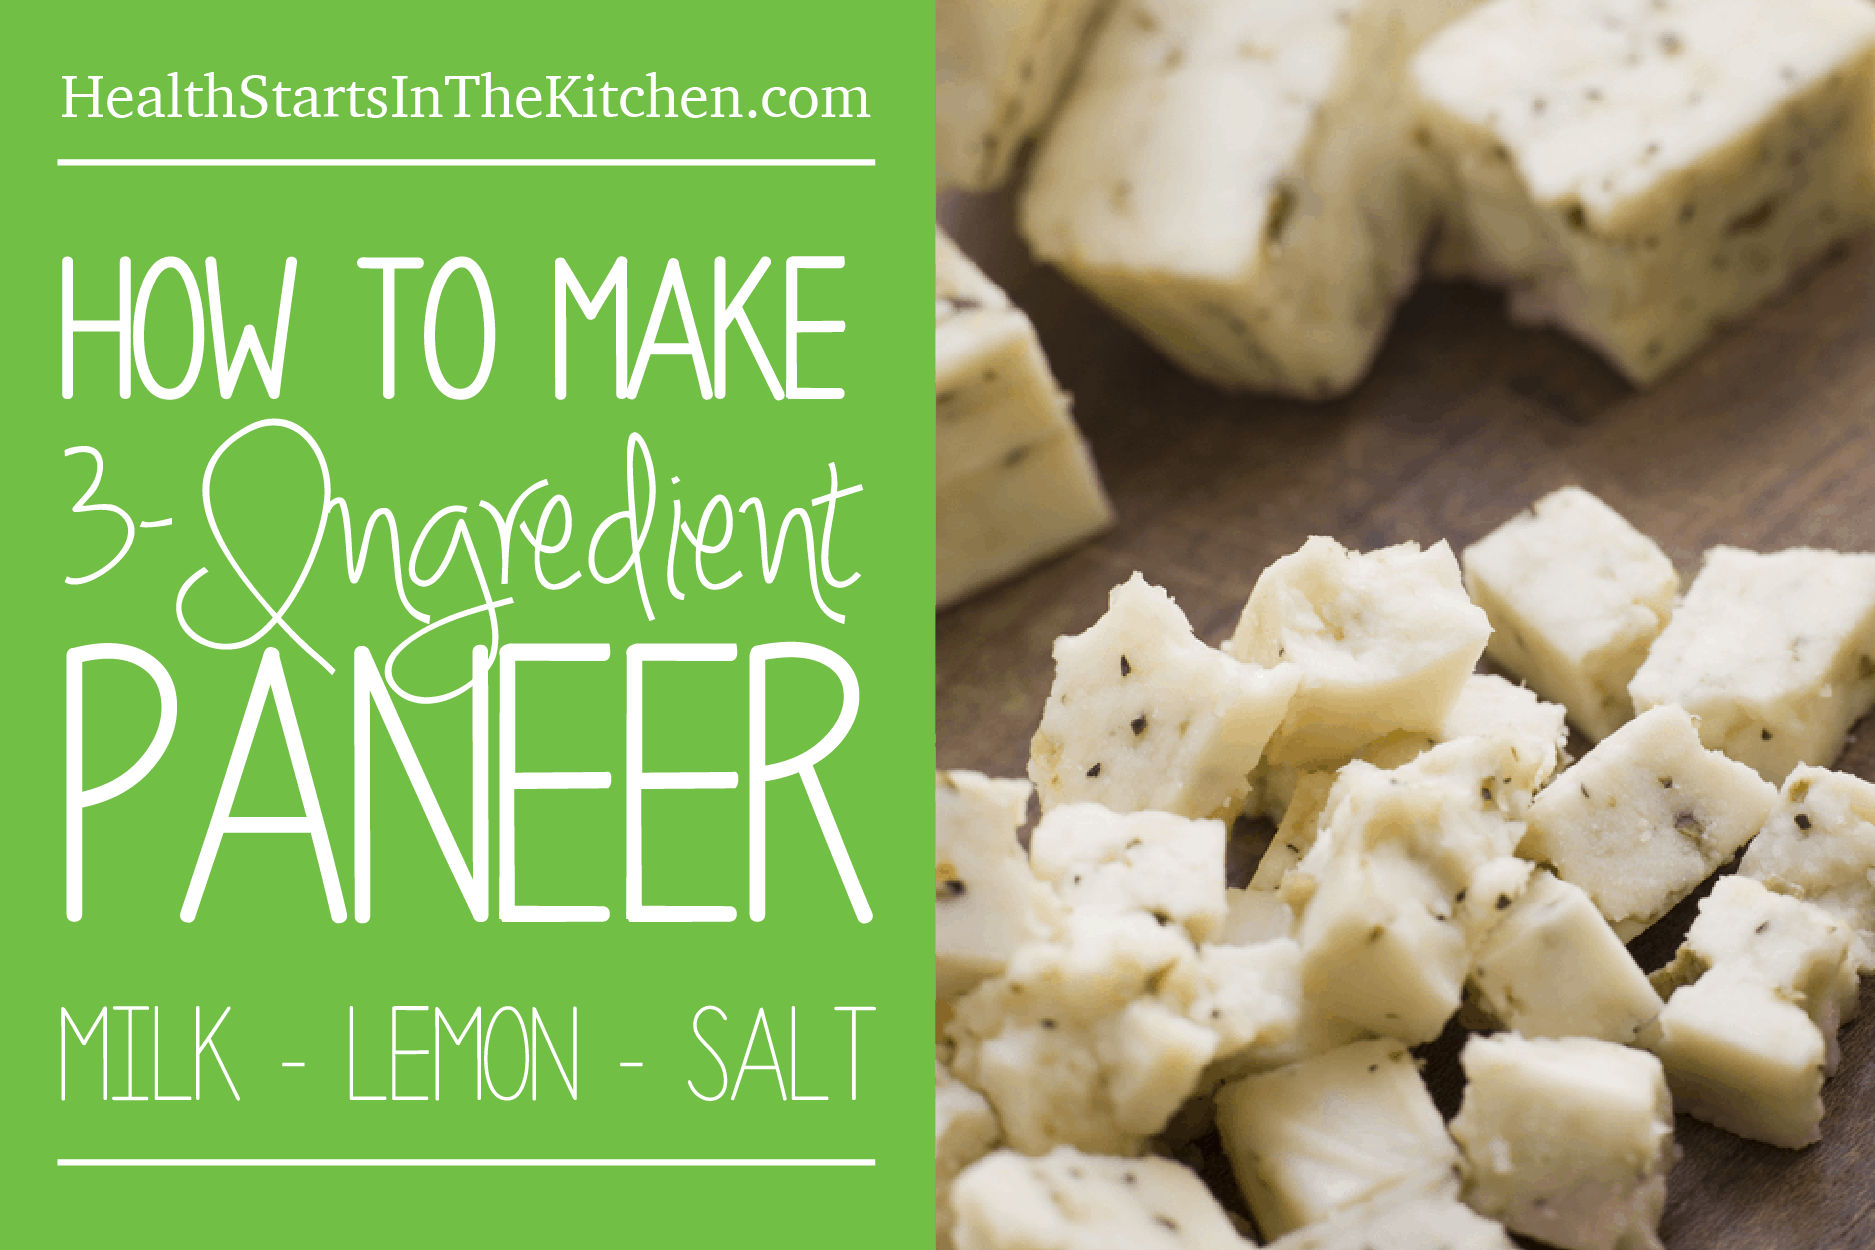 How to make Paneer Cheese with just 3 ingredients: Milk, Lemon, Salt